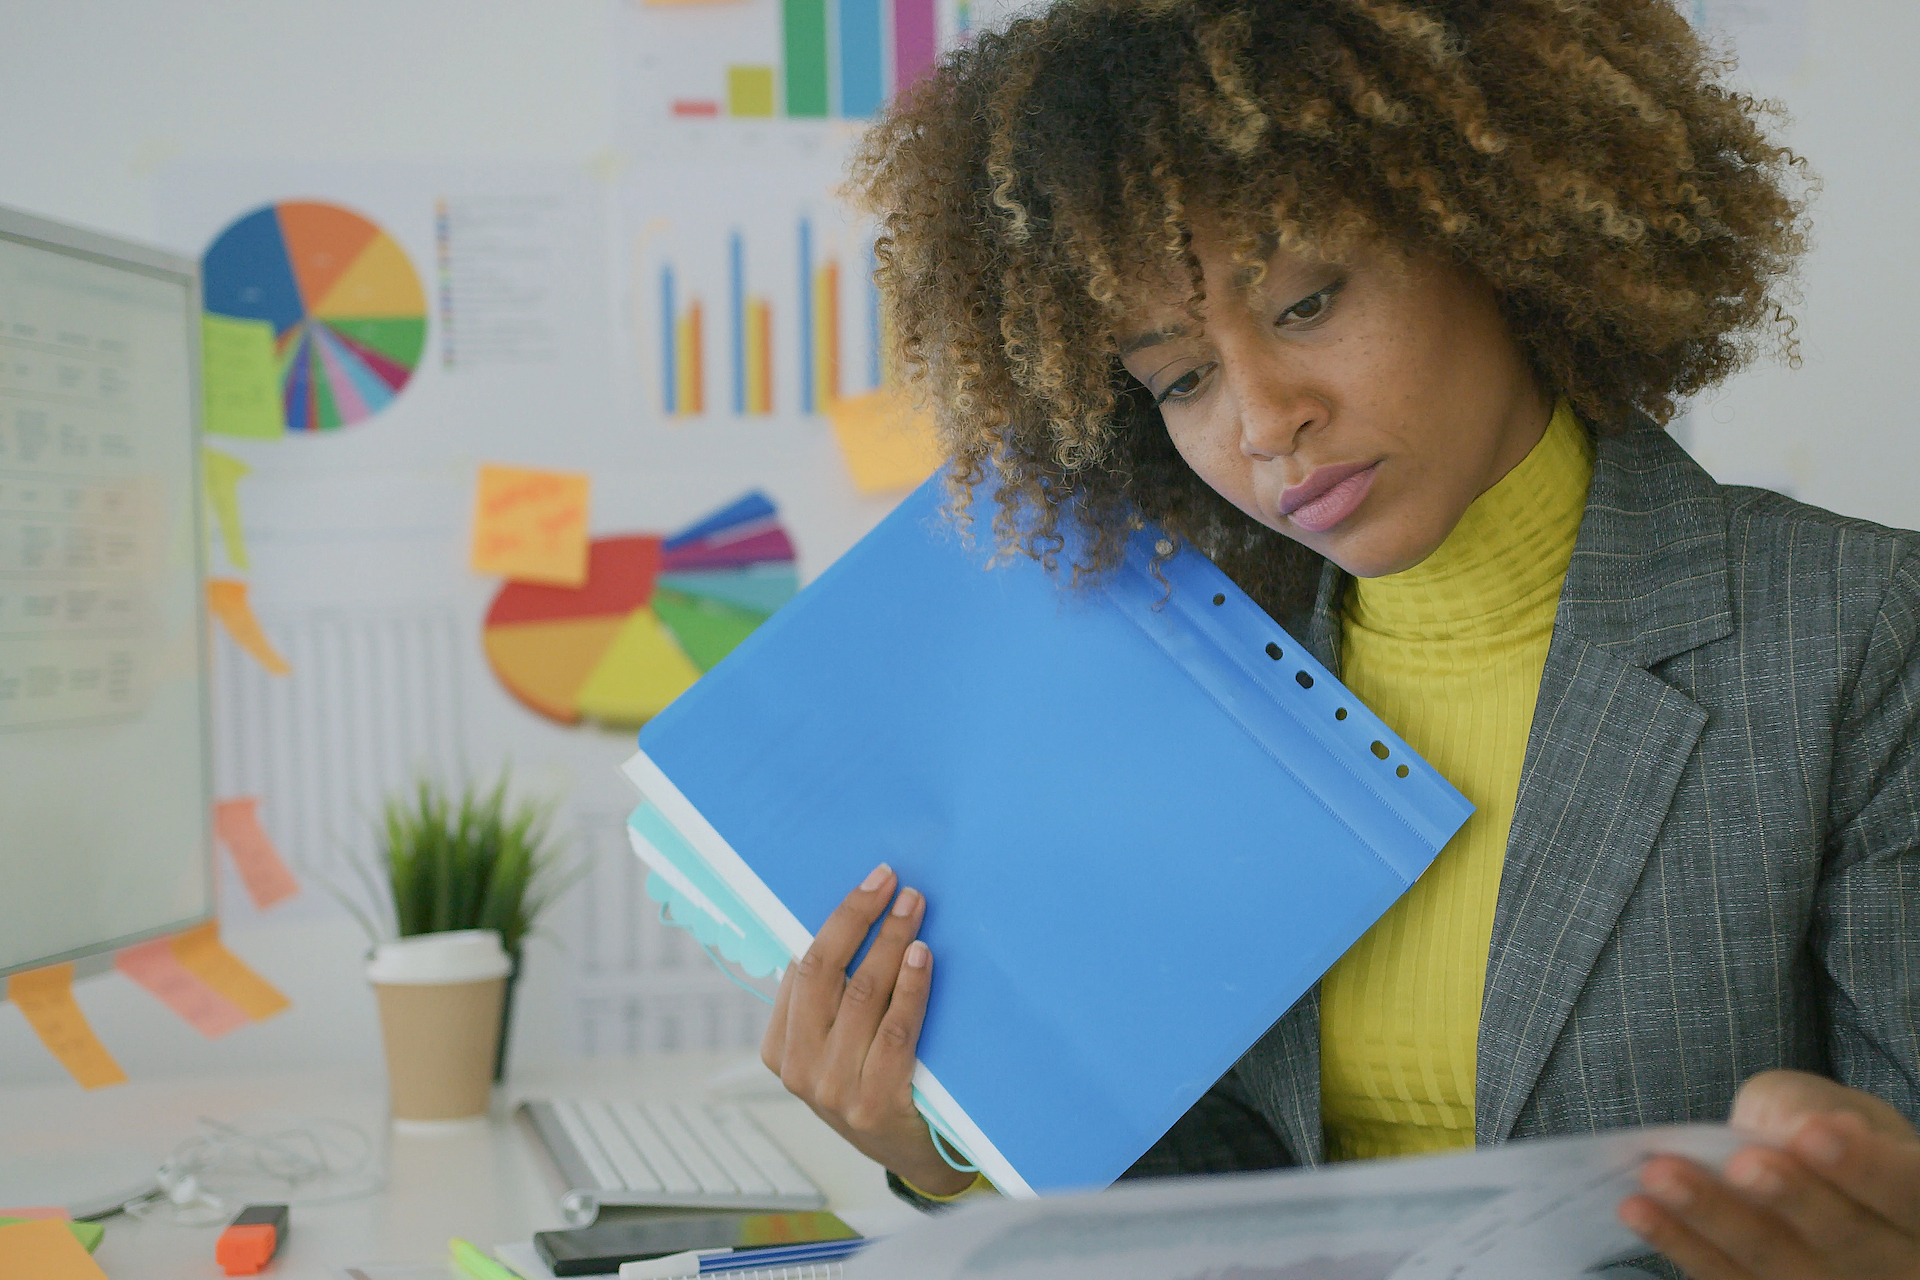 Businesswoman sitting at desk and looking through papers in files with data